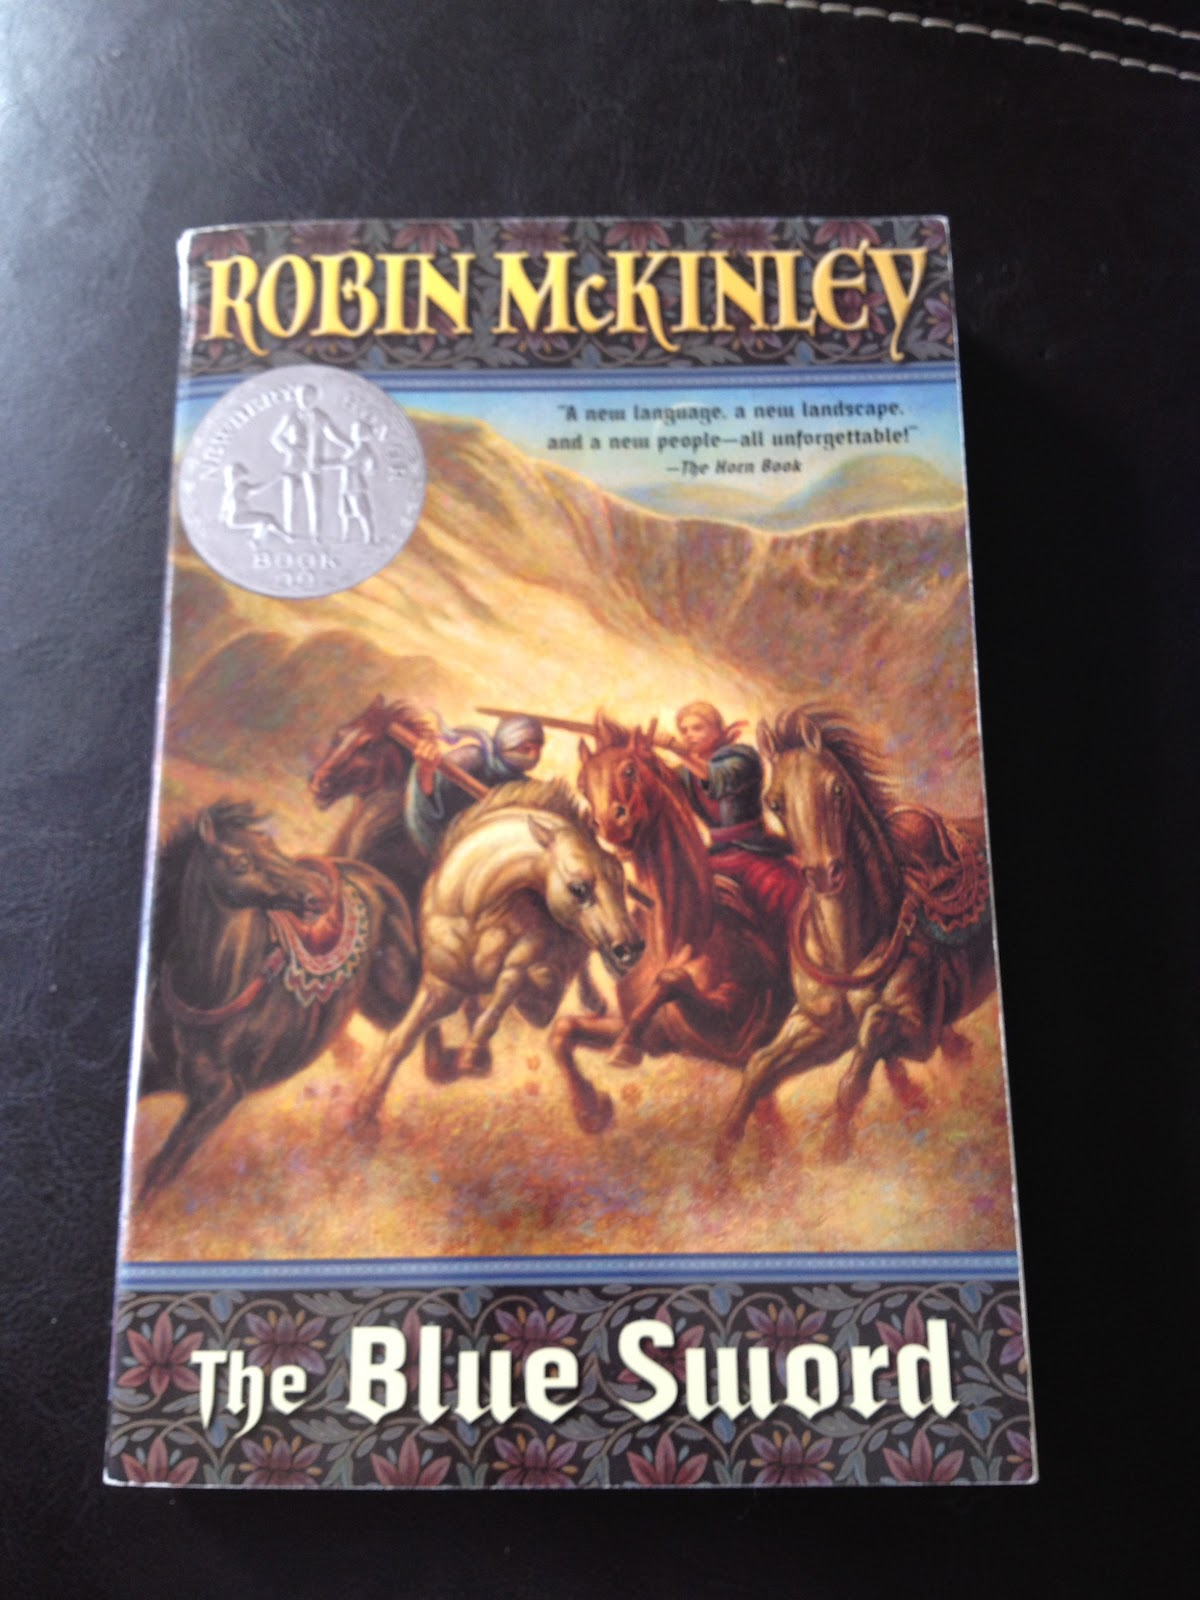 Do any one have a essay on The hero and the crown by Robin McKinley?